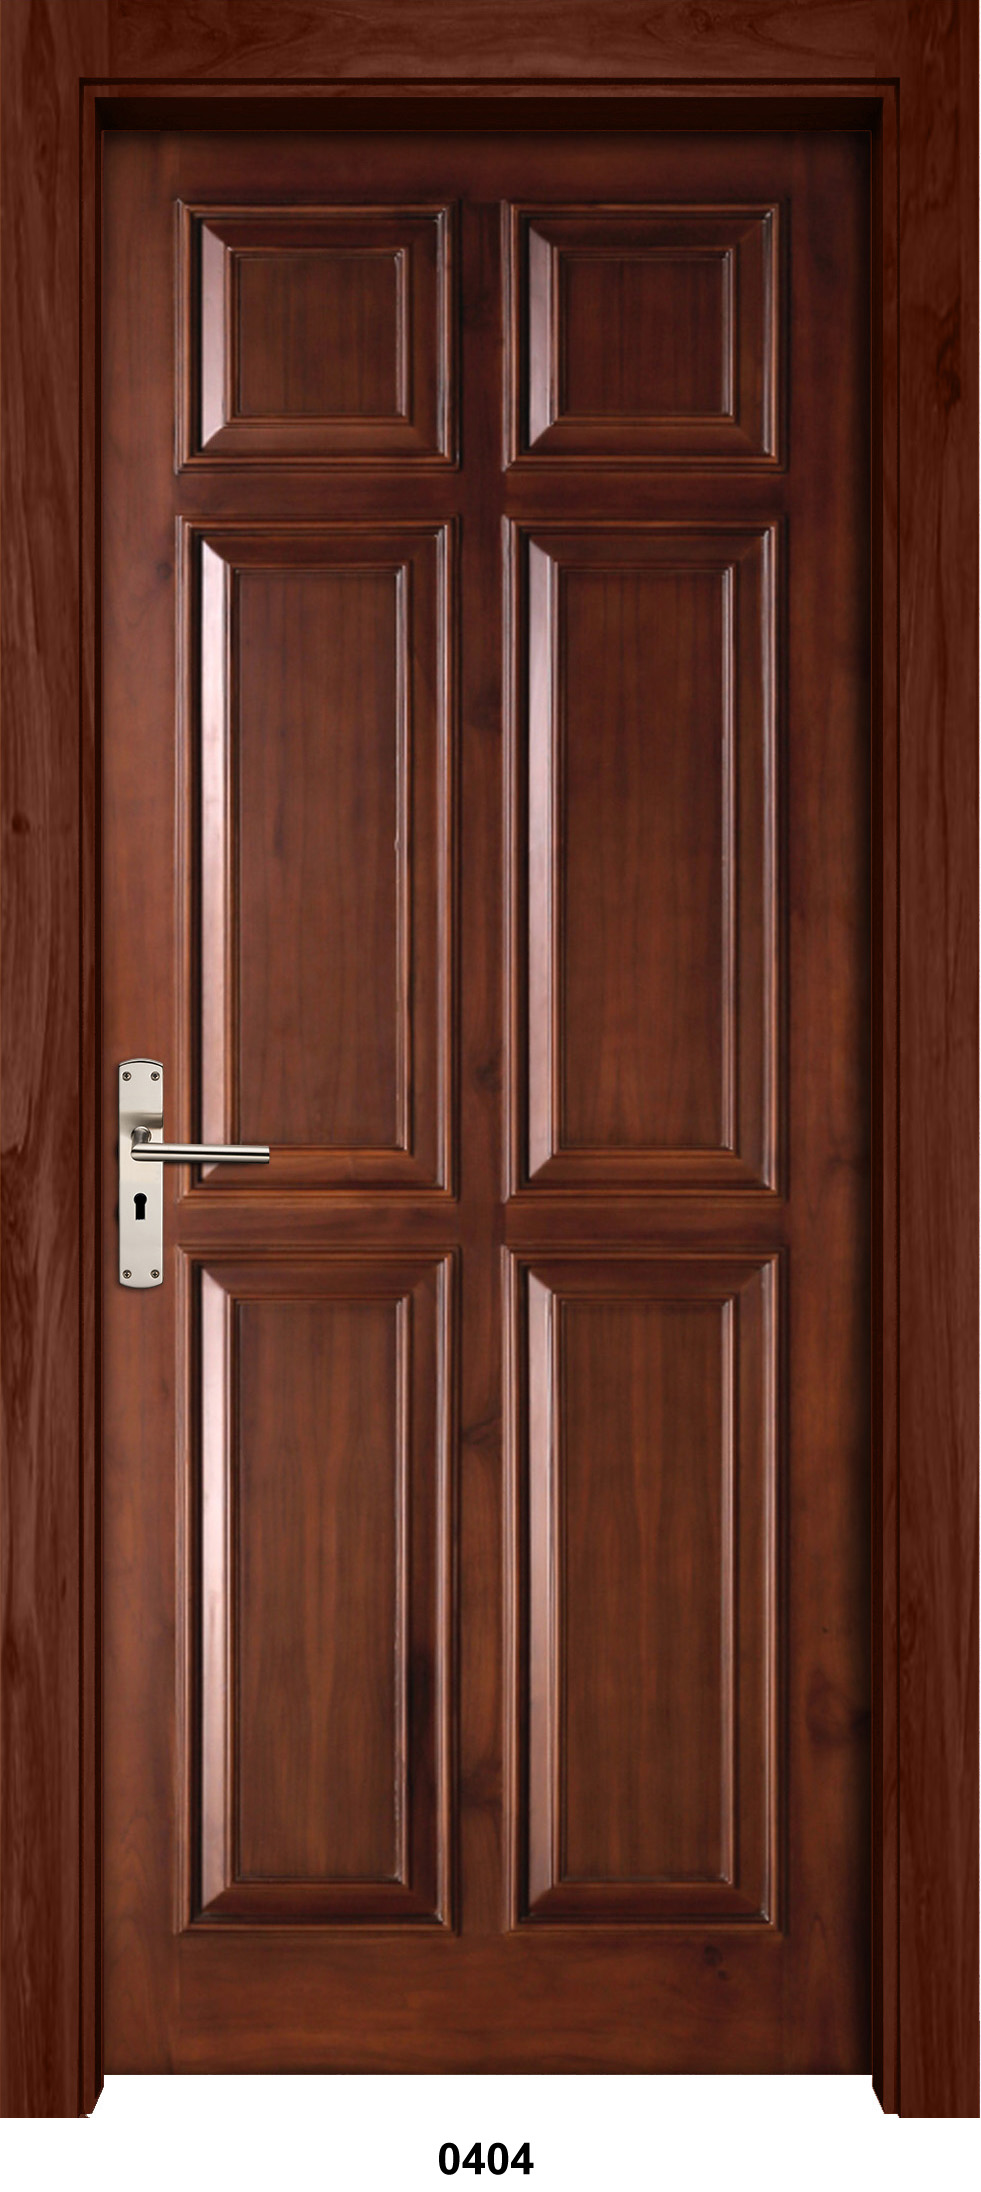 full latch wooden hardware design striking modern of size round solid door teak glossy outstanding wood photos doors barnr for track burnish houses designs with